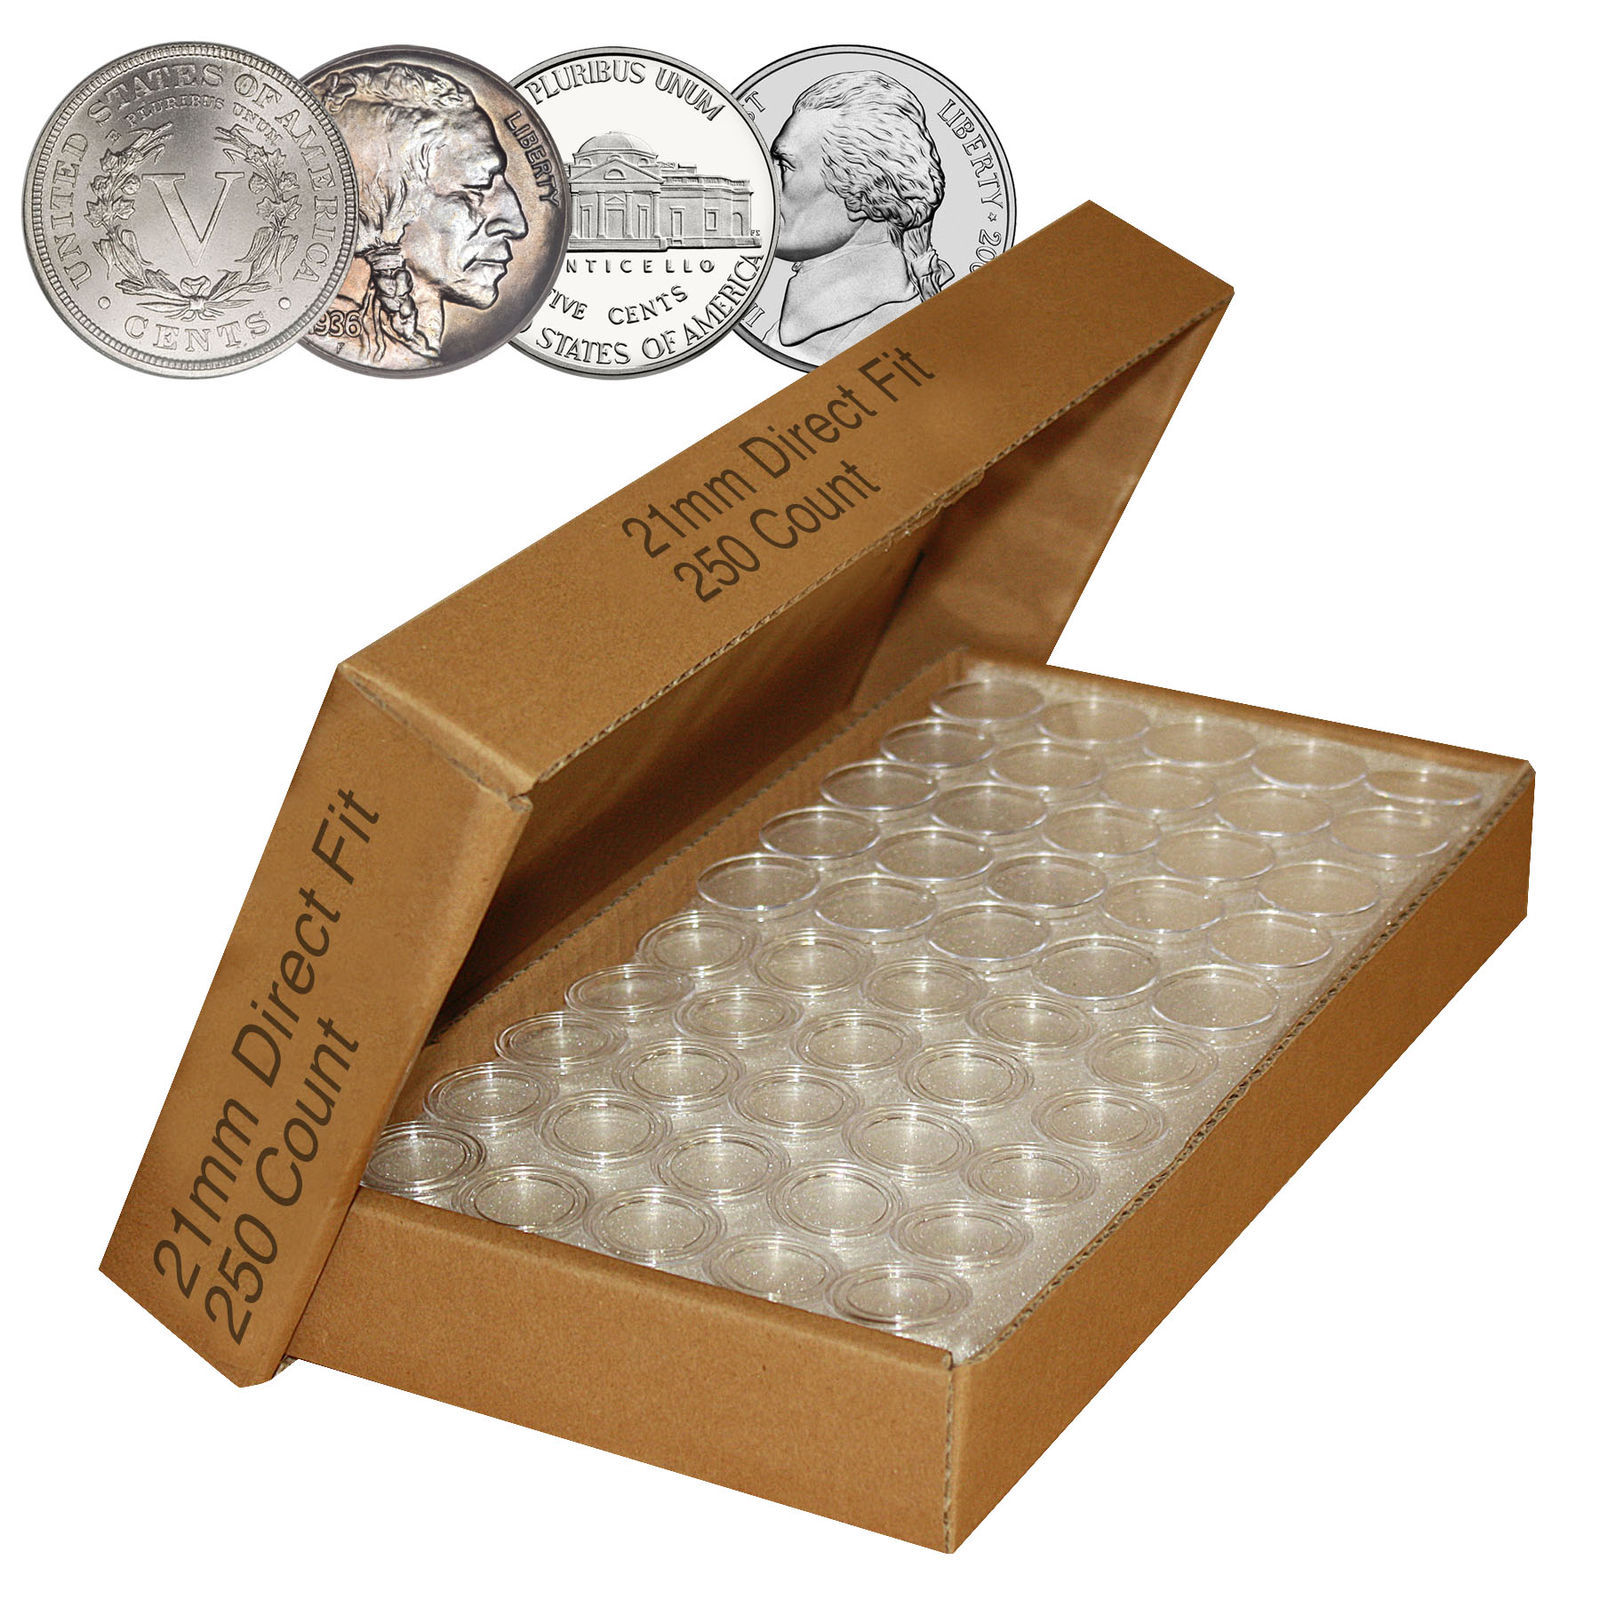 Primary image for Direct-Fit Airtight 21mm Coin Capsule Holders For NICKELS (QTY: 250)